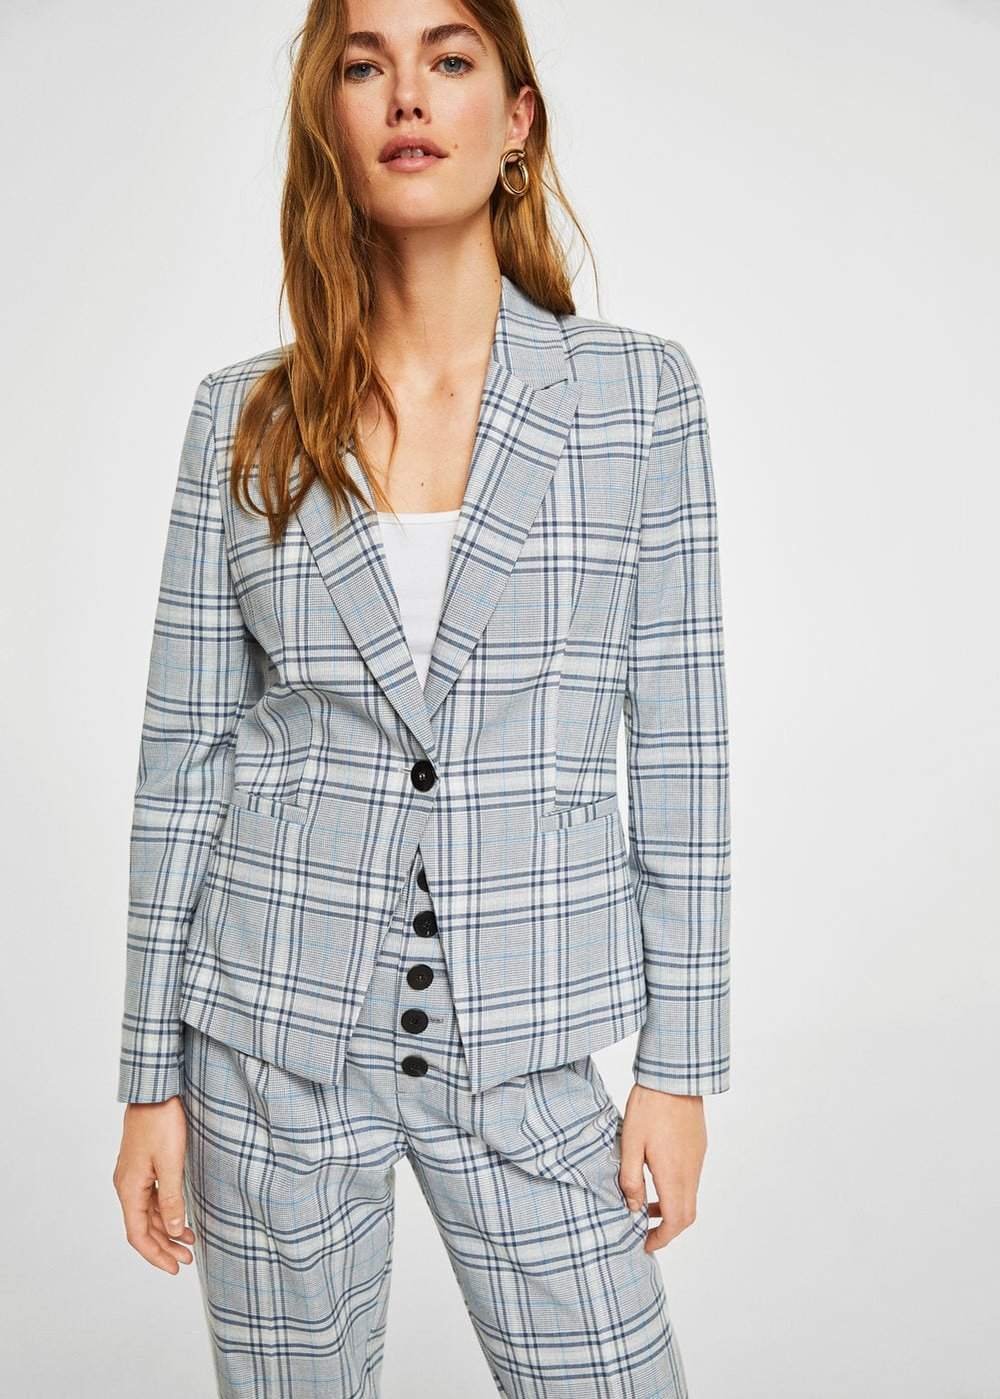 Mango's check structured blazer